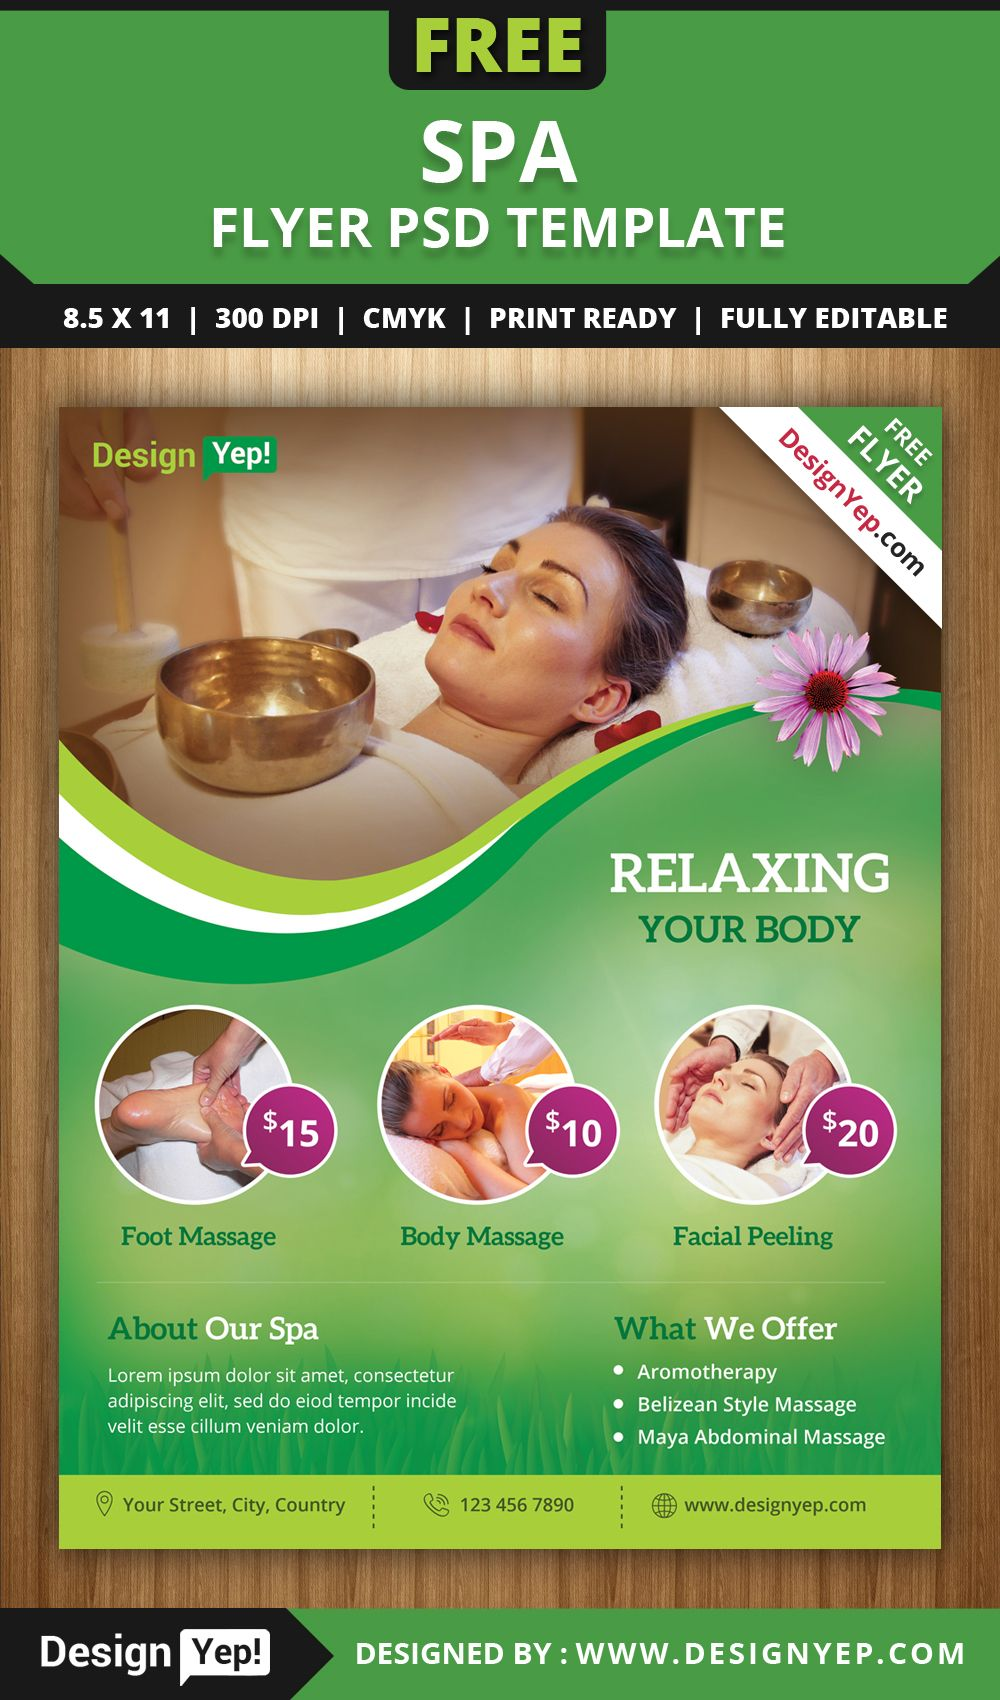 FreeSpaFlyerPSDTemplateDesignyep Cosmetic F L Yer - Free spa brochure templates